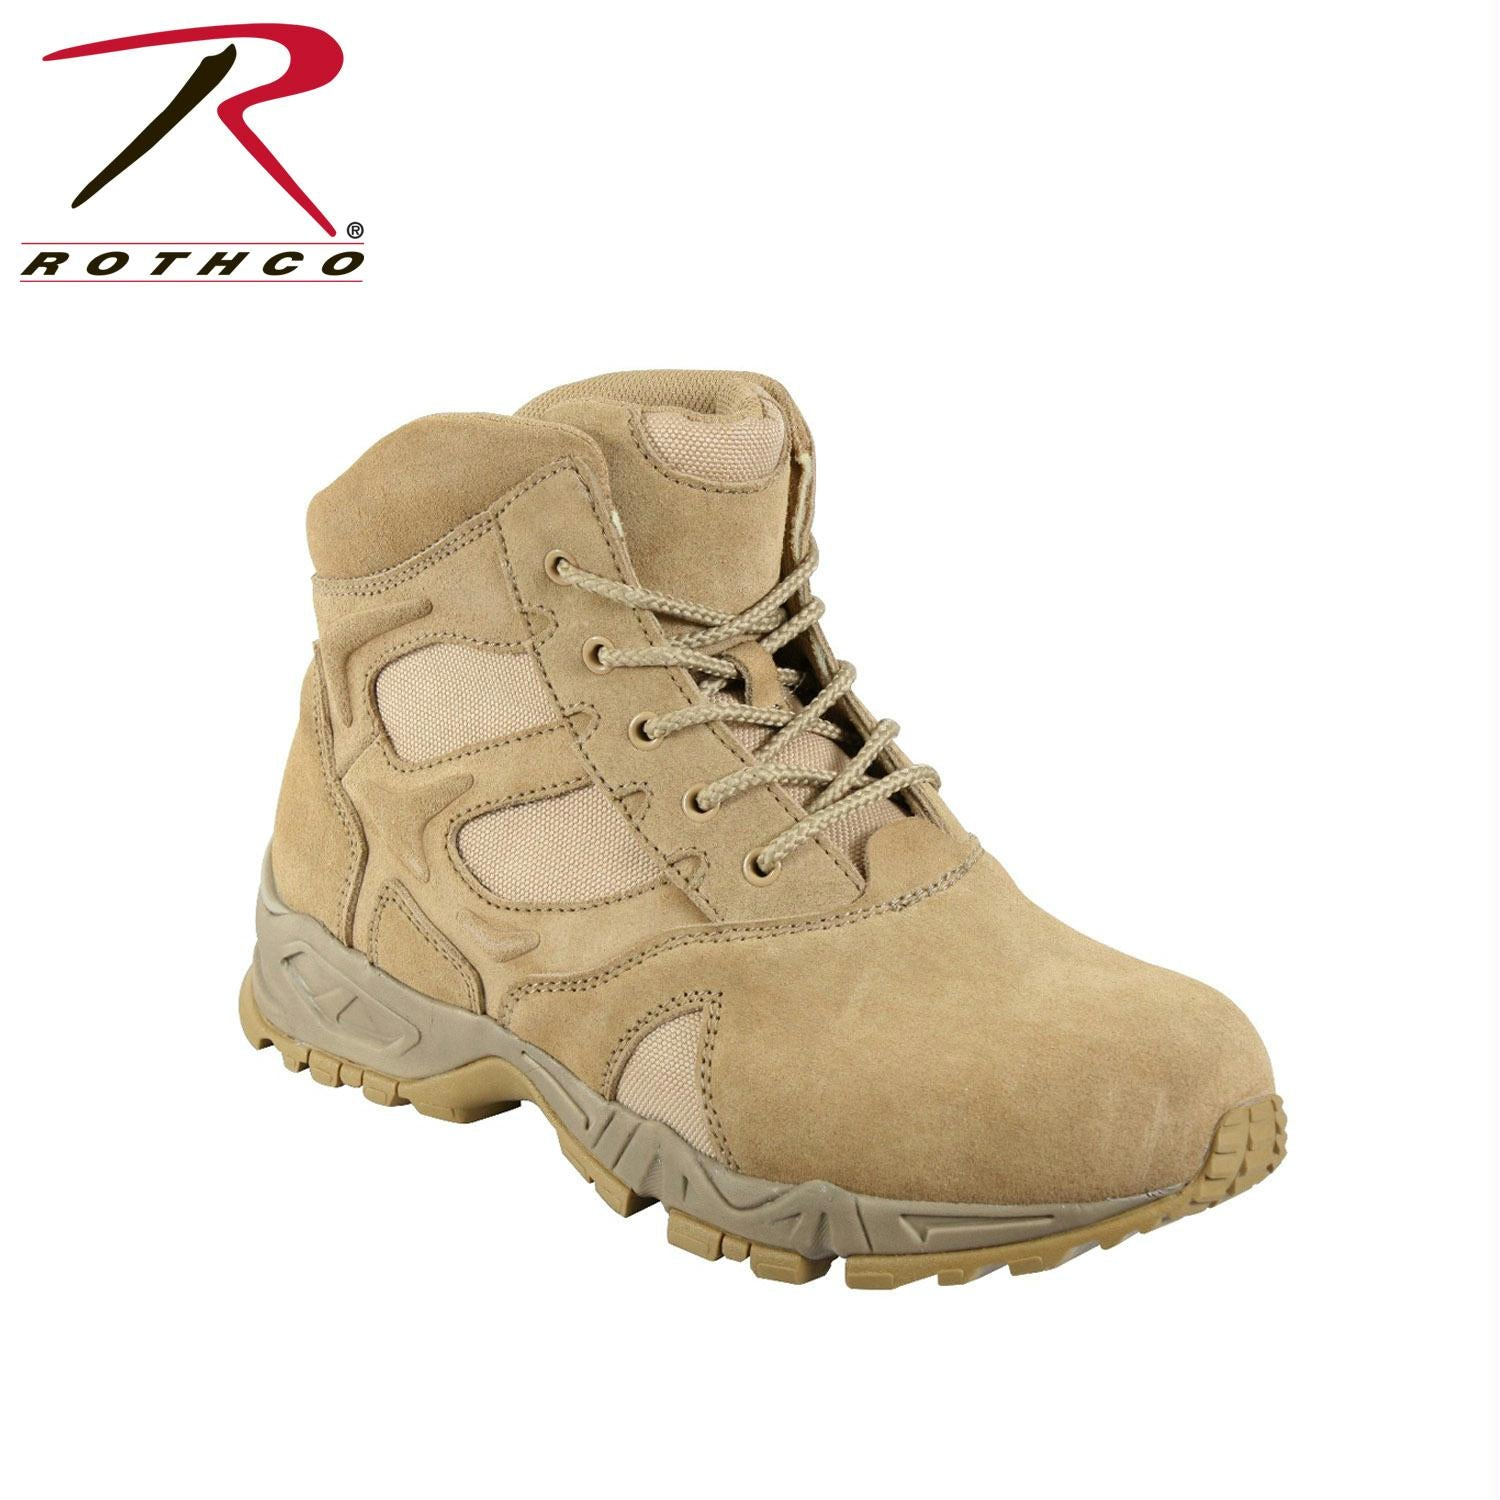 Rothco 6 Inch Forced Entry Desert Tan Deployment Boot - 12 / Wide